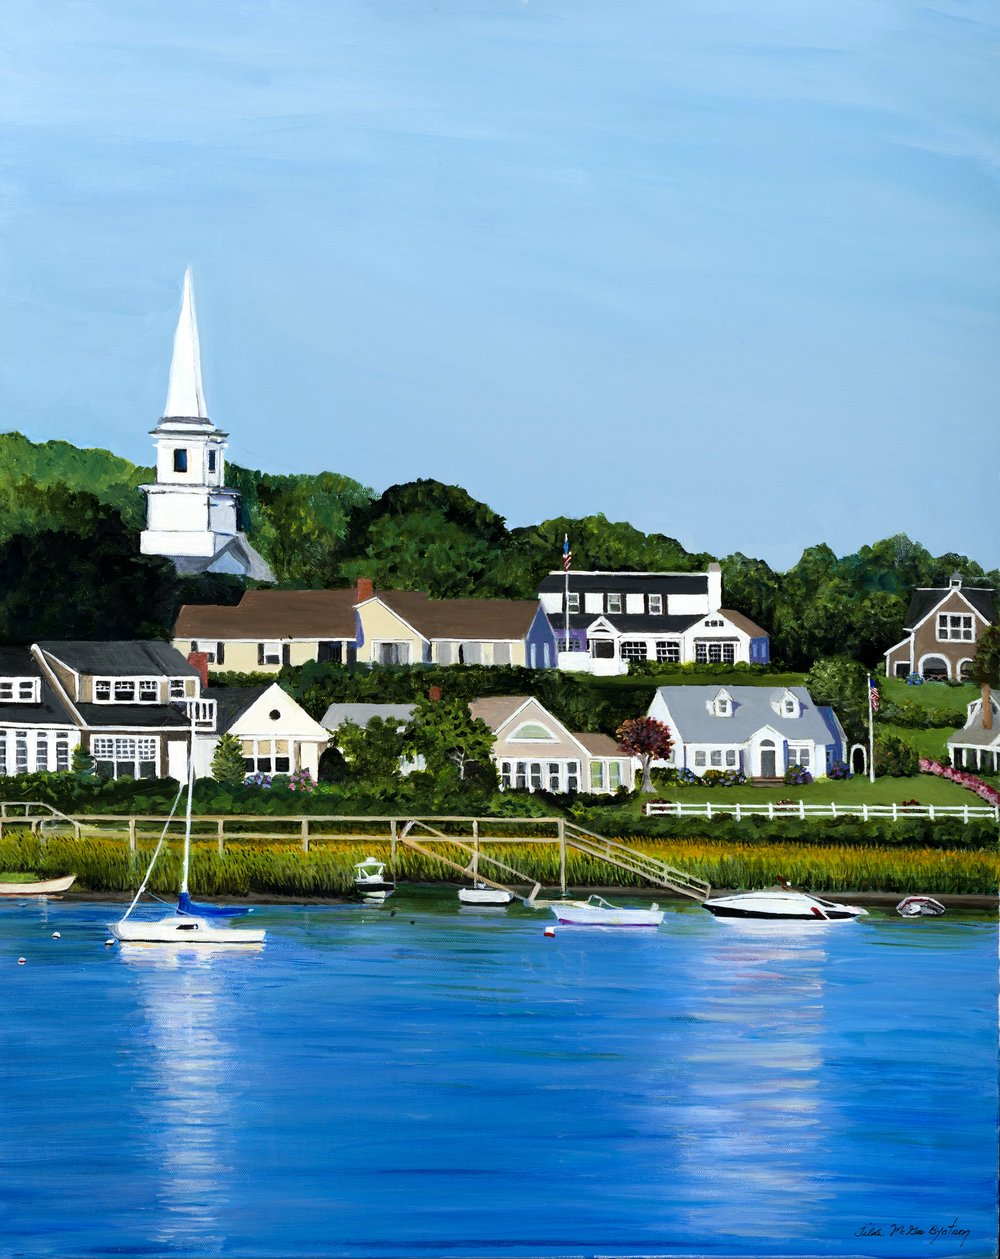 Oyster Harbor View (24 x 30)   T.M.Bystrom (002).jpg